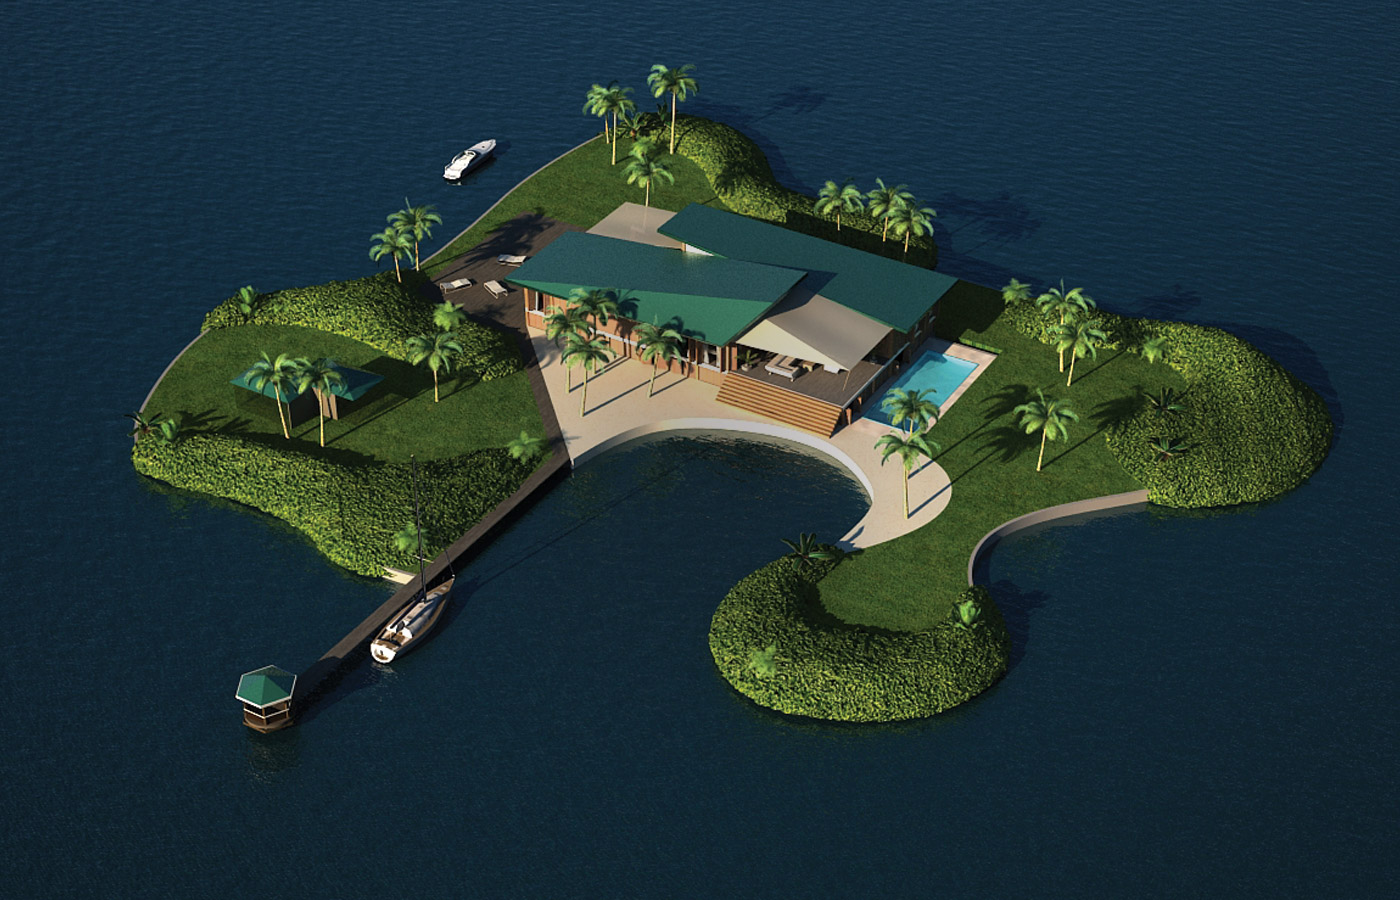 108_amillarah-private-island-project-maldives-2(2)